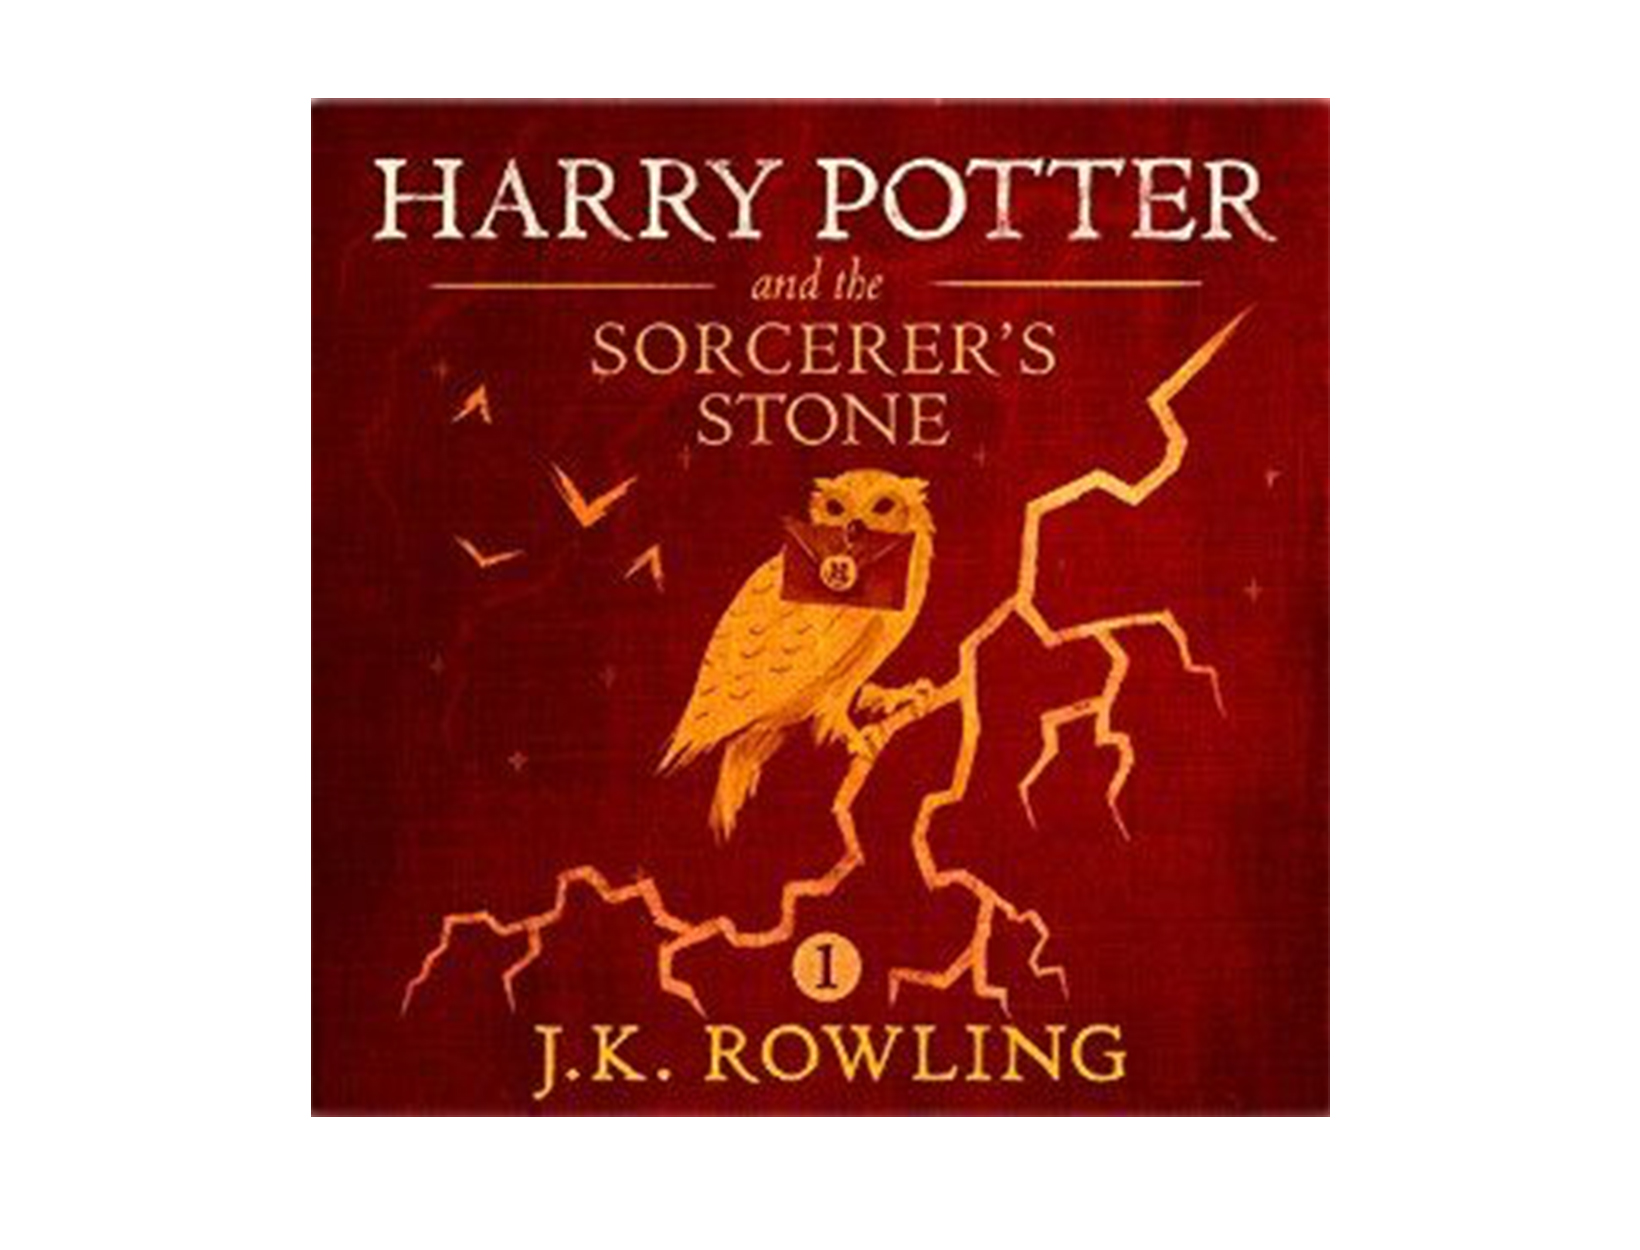 Harry Potter Series by J.K. Rowling, read by Jim Dale